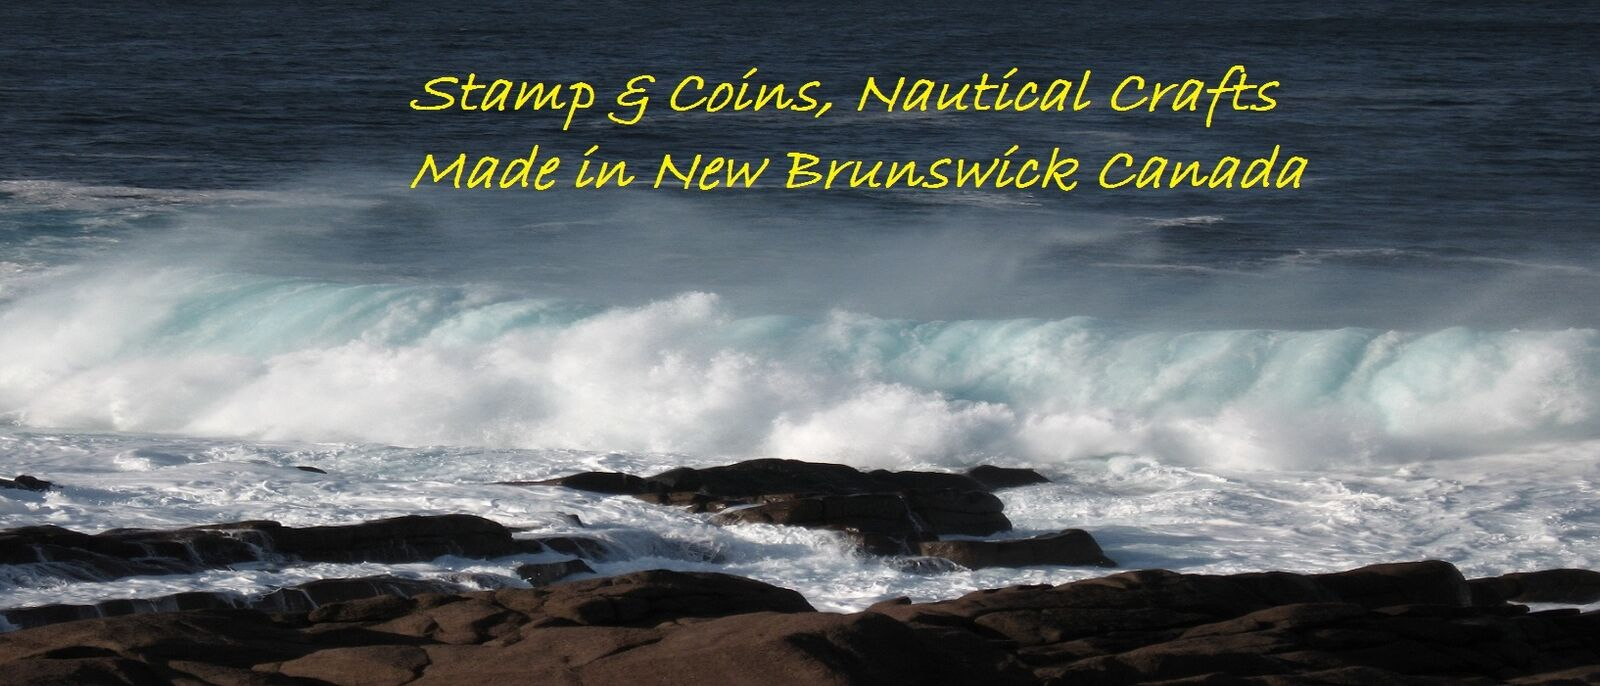 Coins-Stamps & Nautical Crafts